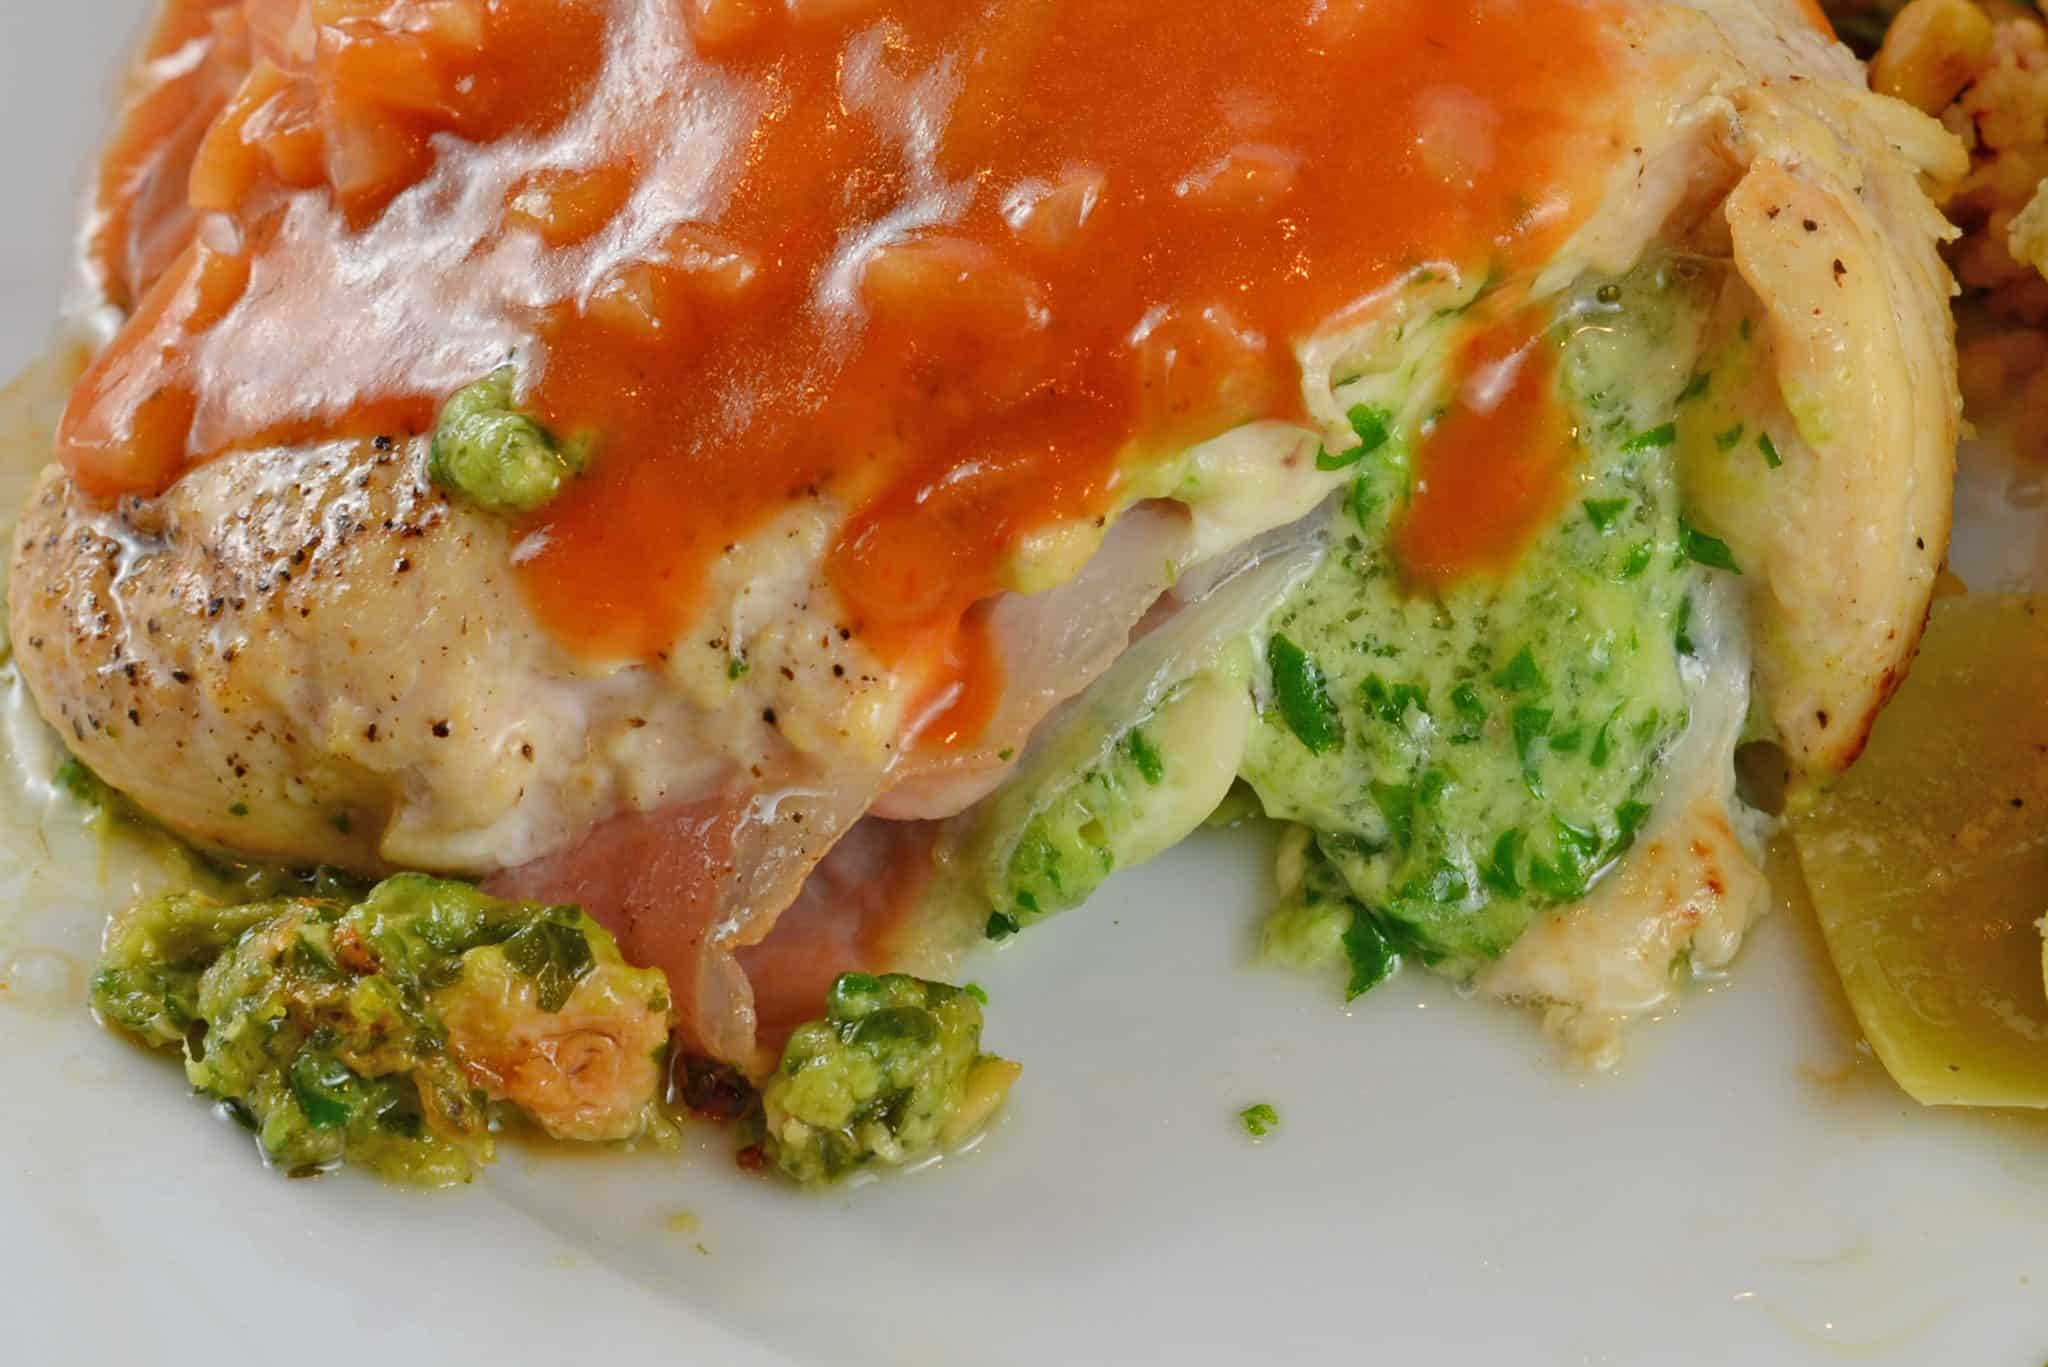 Gruyere and Prosciutto Stuffed Chicken is topped off with a silky tomato and shallot sauce. While this looks like a restaurant caliber meal, it only takes about 1 hour!